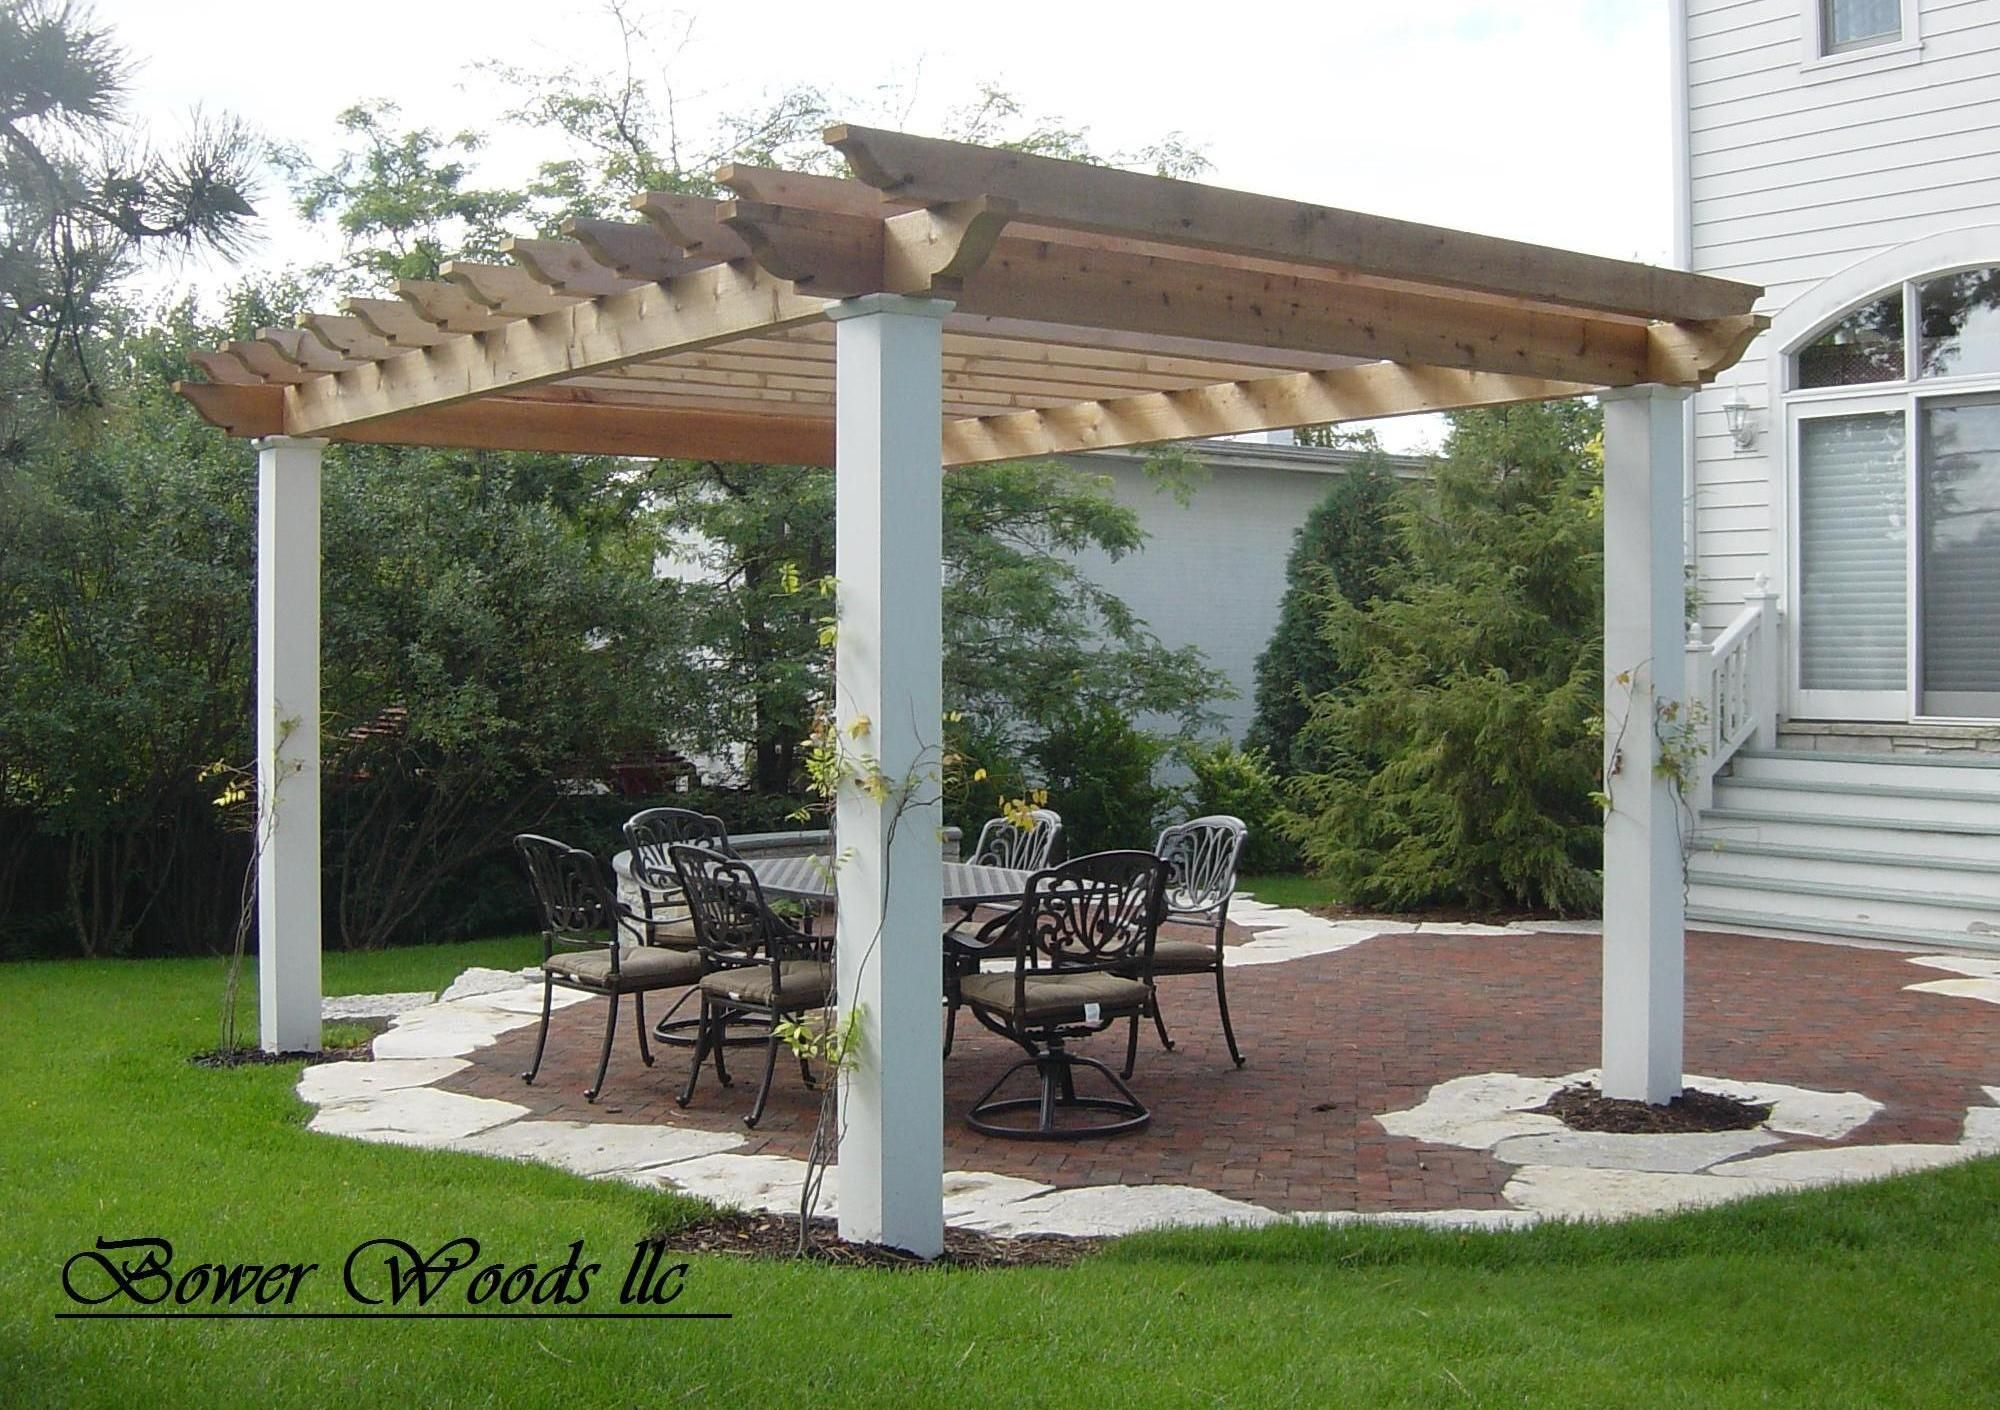 instruct how to build group a pergola and aspect pictures of